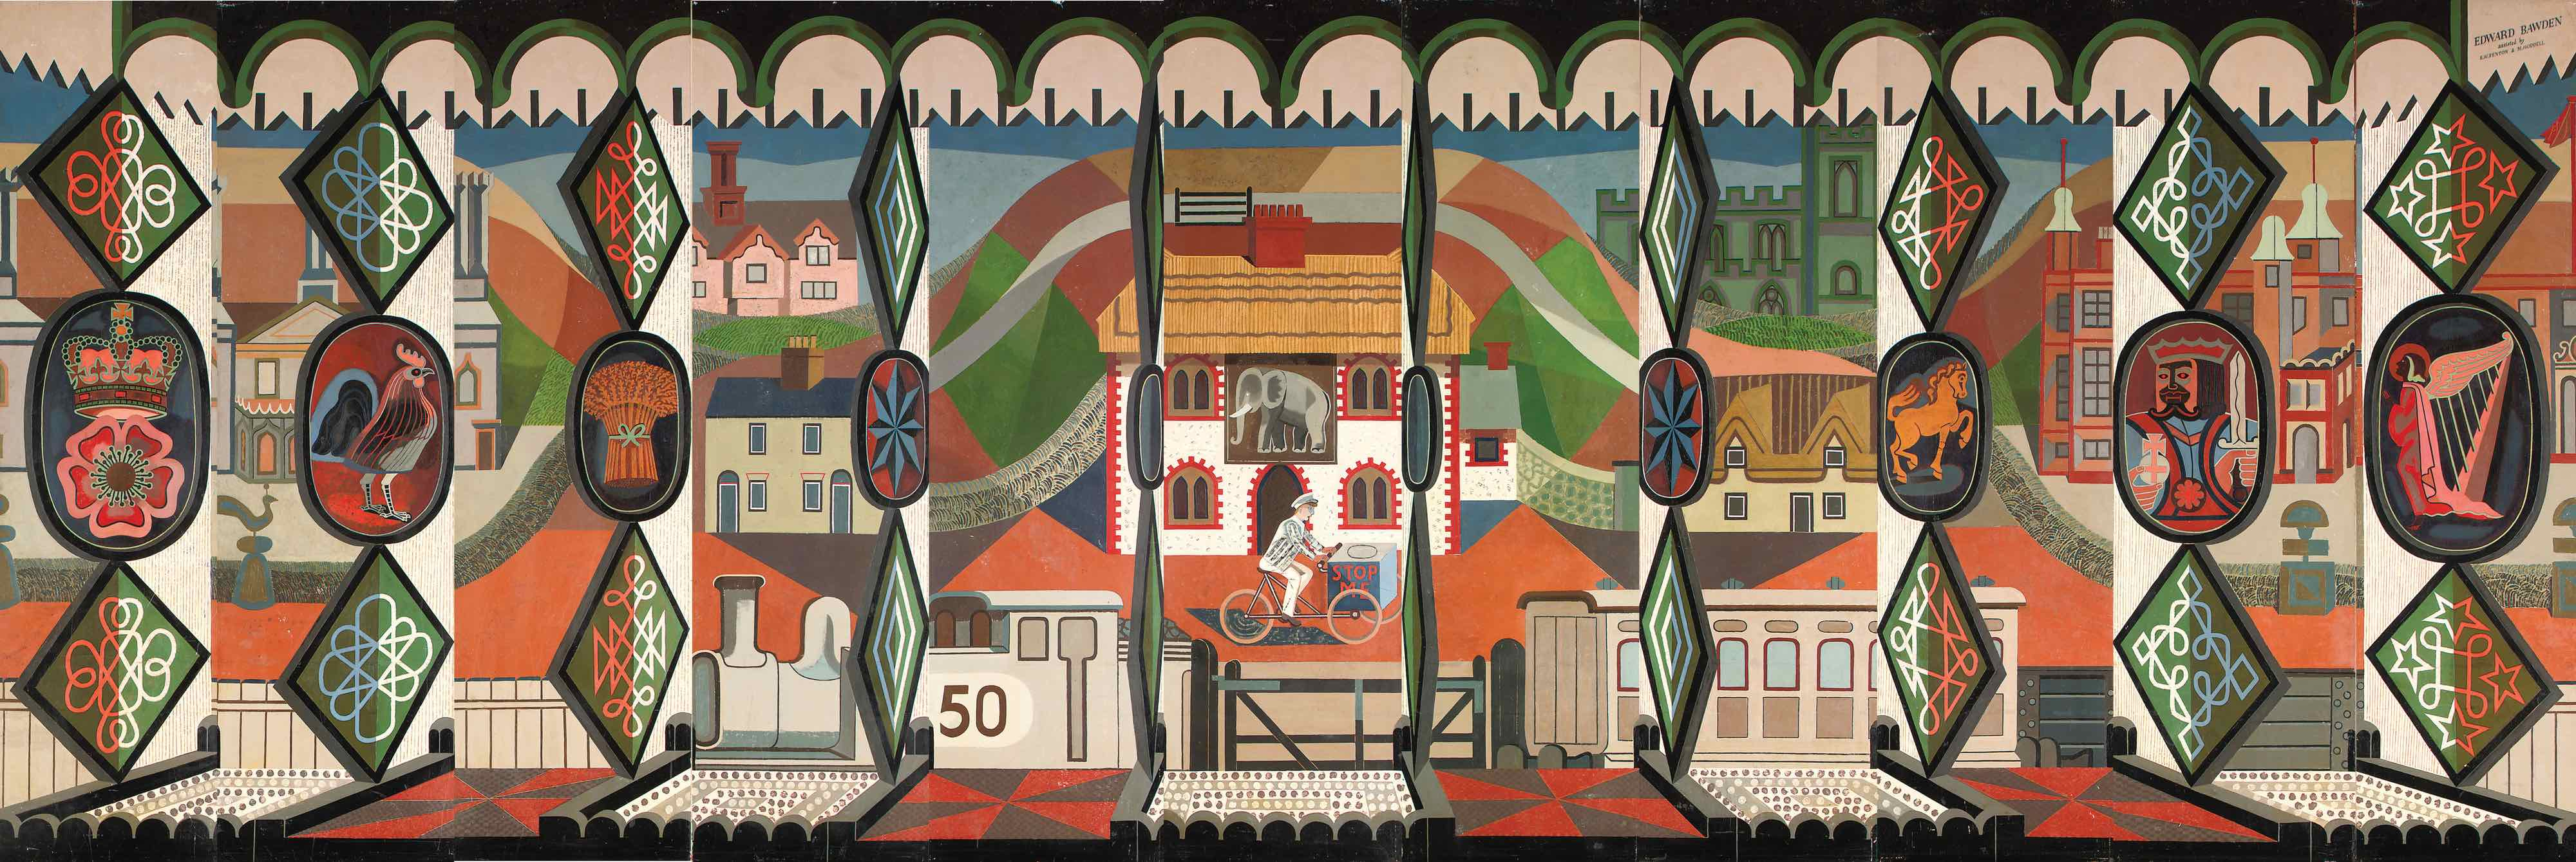 The English Pub, mural for Oronsay, by Edward. Bawden, assisted by E.W. Fenton and M. Hoddell. © Private collection courtesy of Jennings Fine Art and Liss Llewellyn Fine